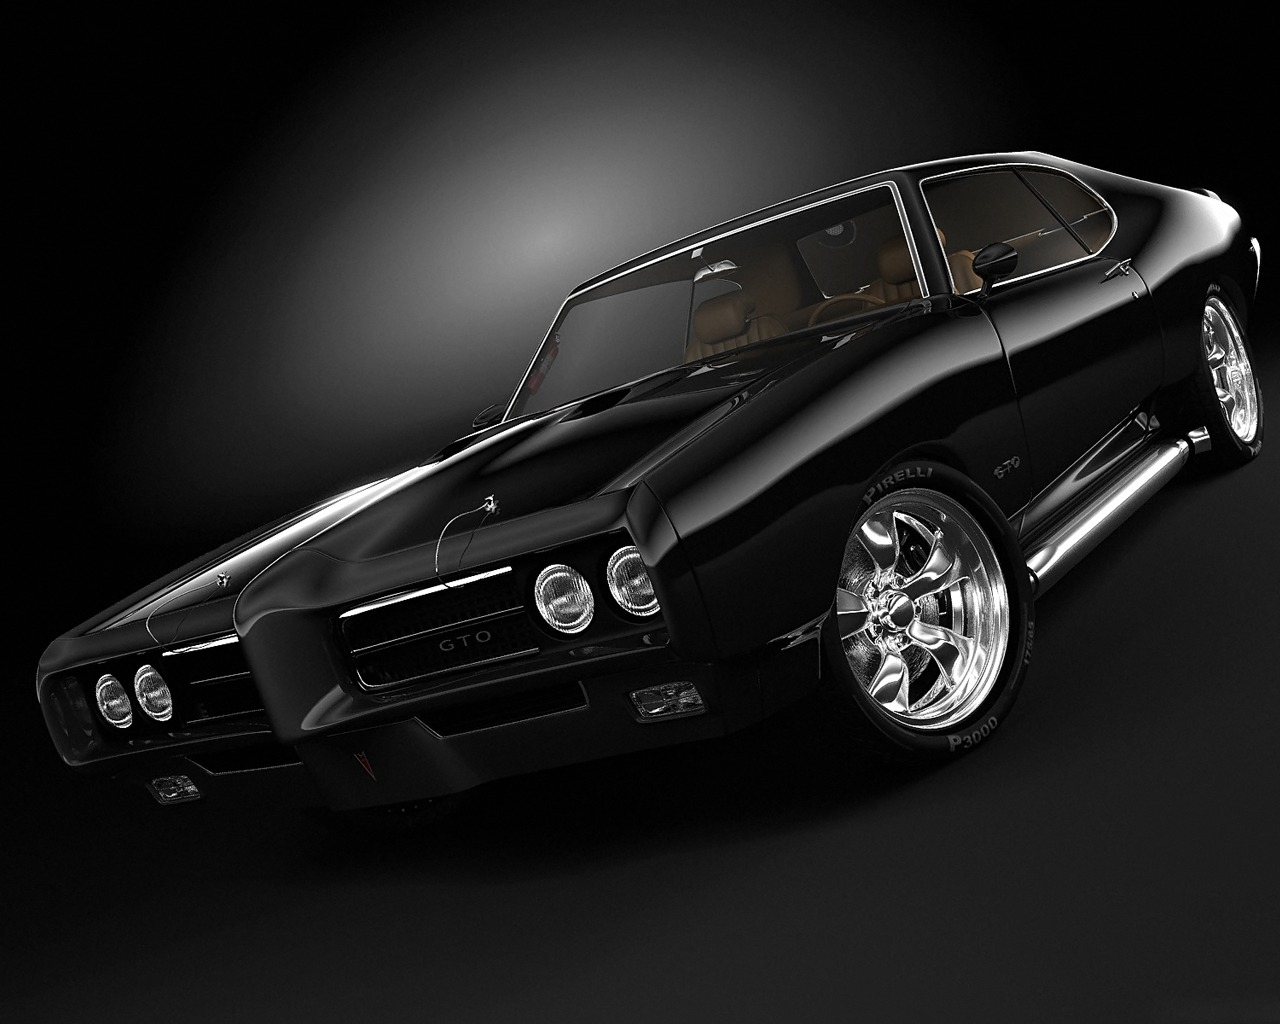 muscle car wallpaper muscle cars cars wallpaper 1280 1024 2404jpg 1280x1024